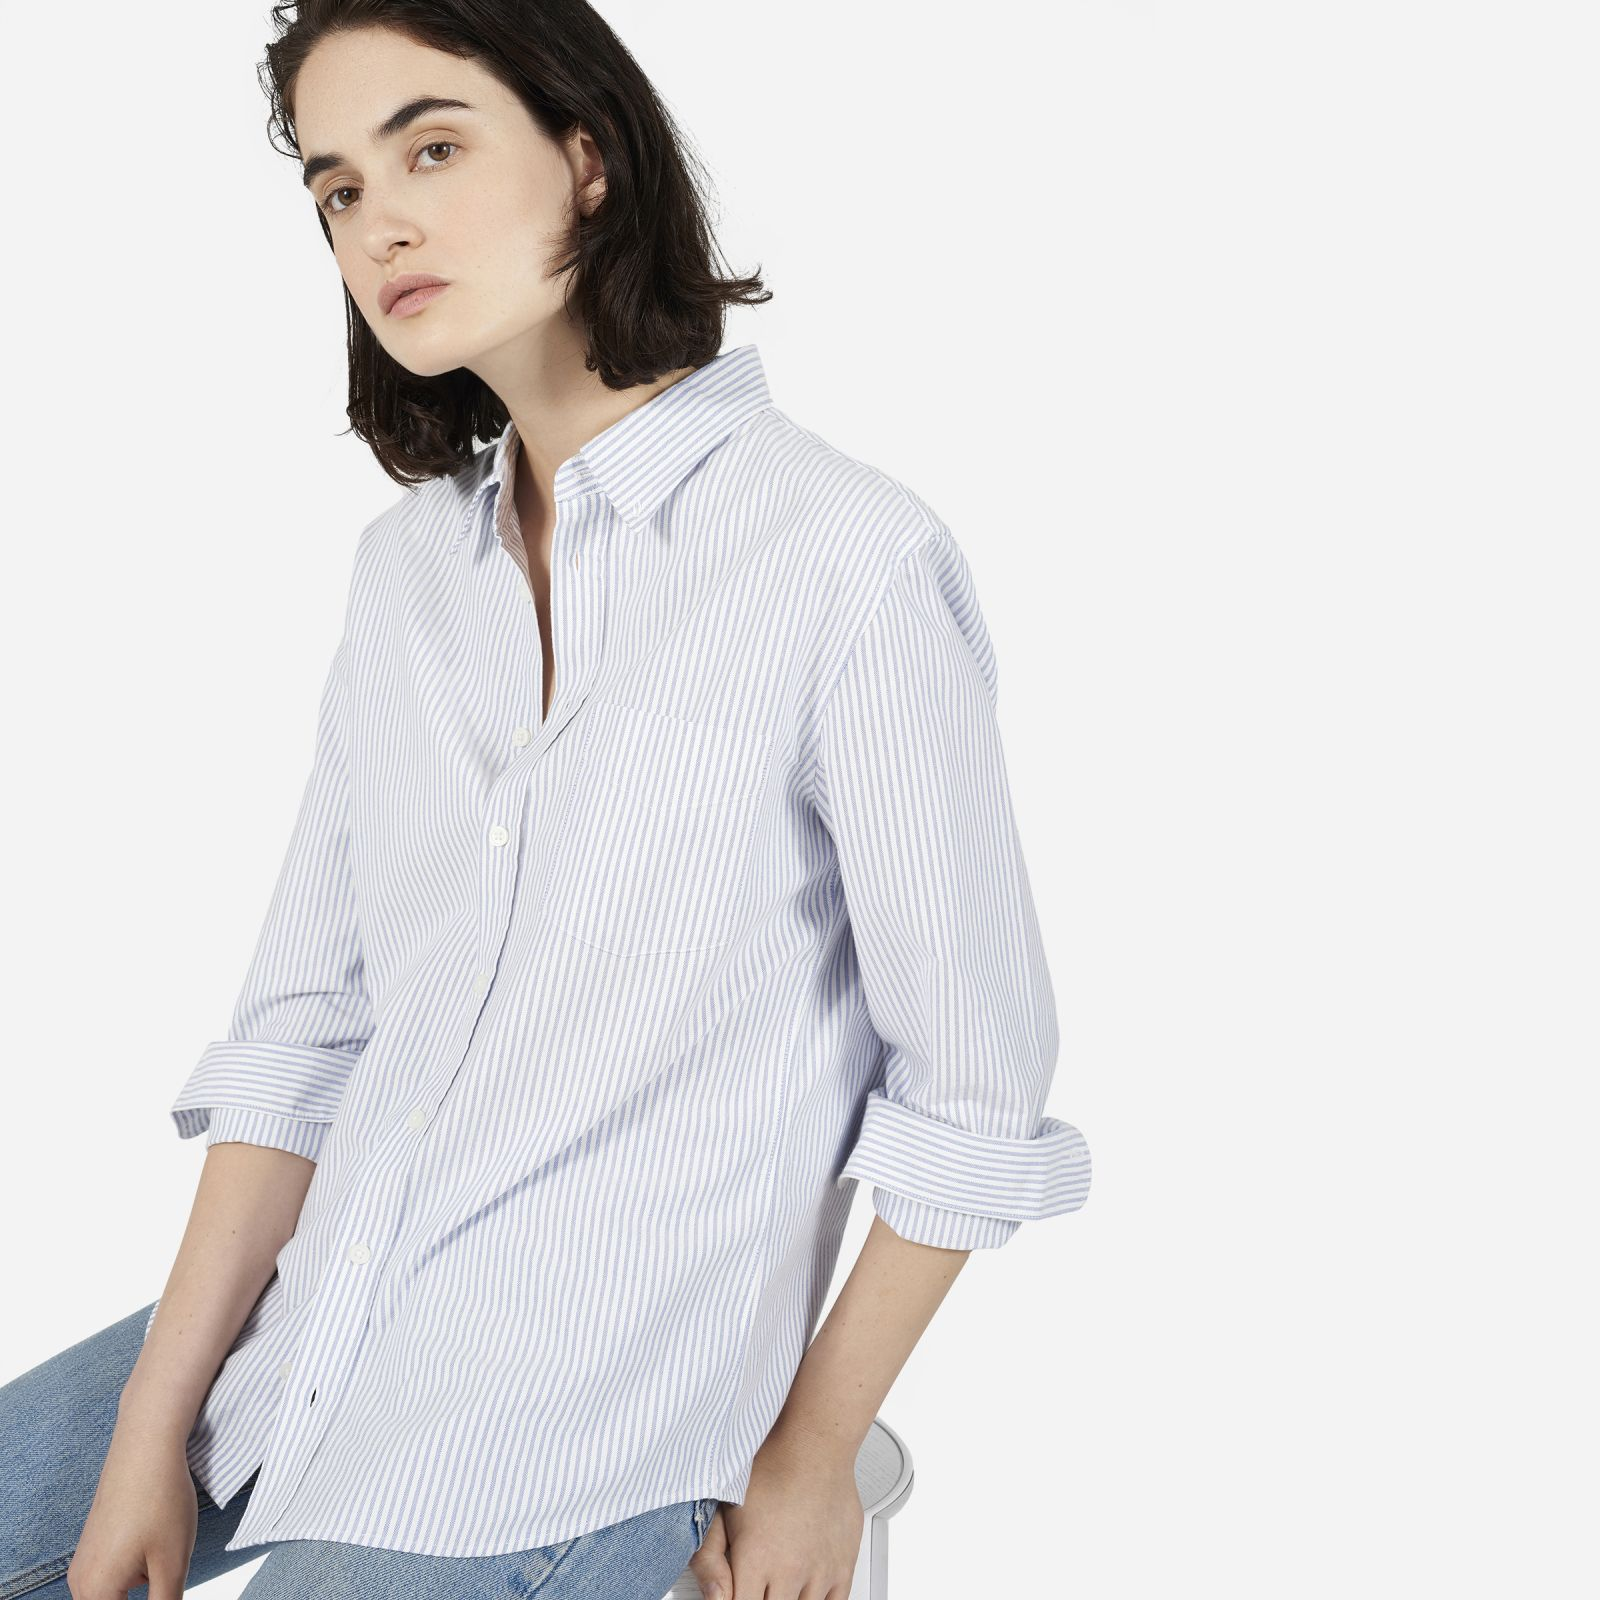 women's men's japanese slim fit oxford shirt by everlane in white/blue, size xl